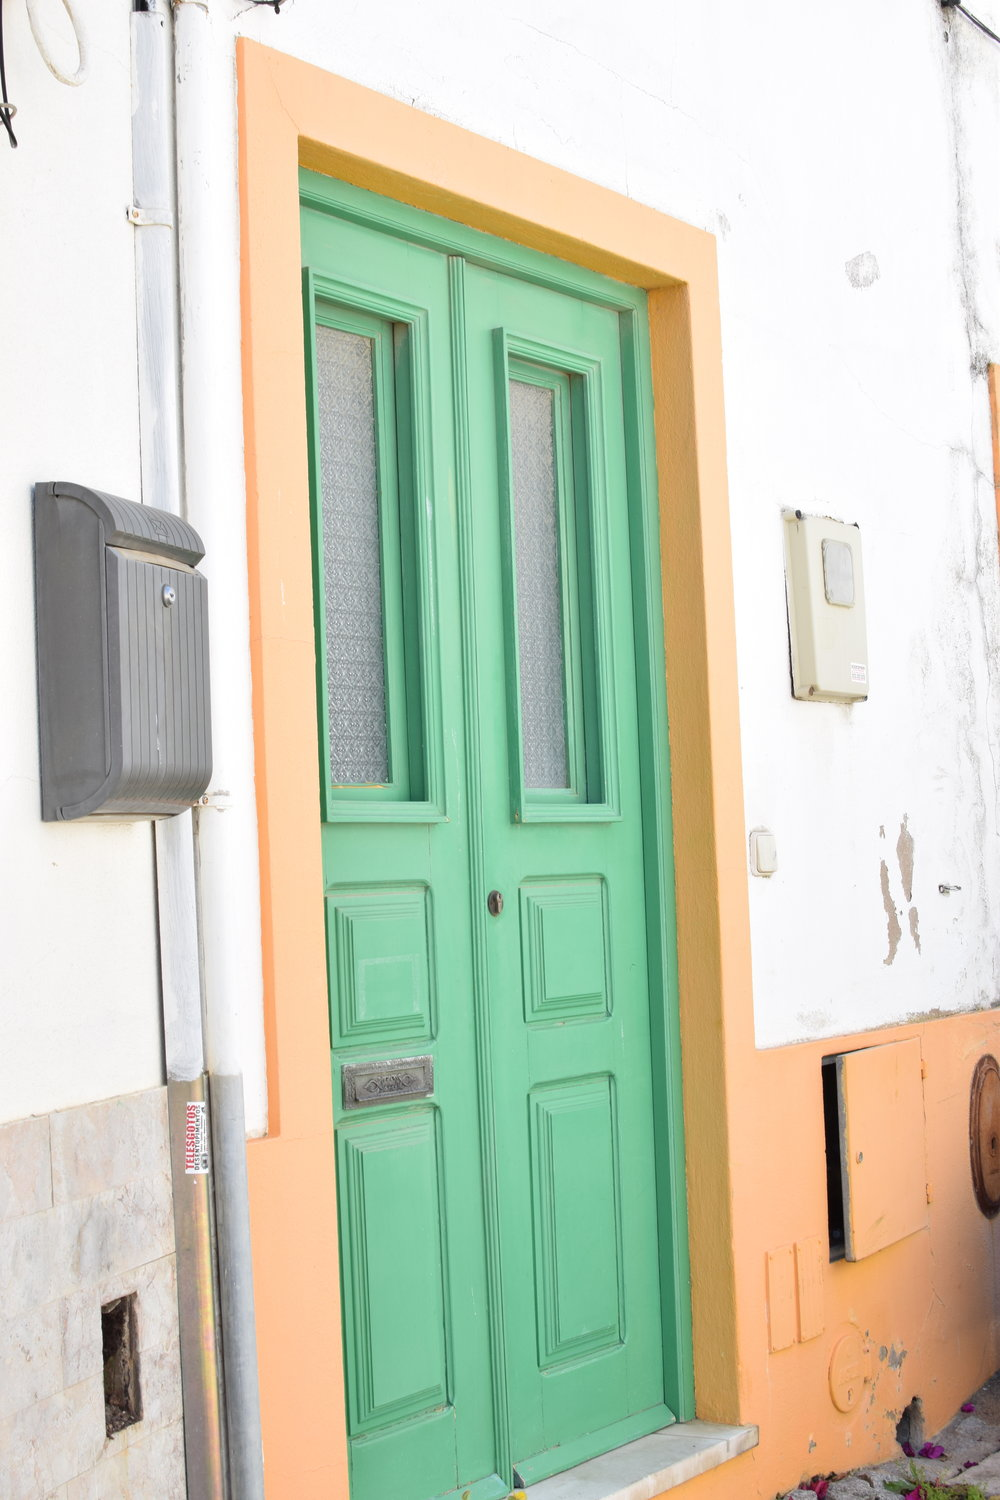 Orange + Green door | Finding colour inspiration in Lagos, Portugal | Soi 55 Travels8.JPG